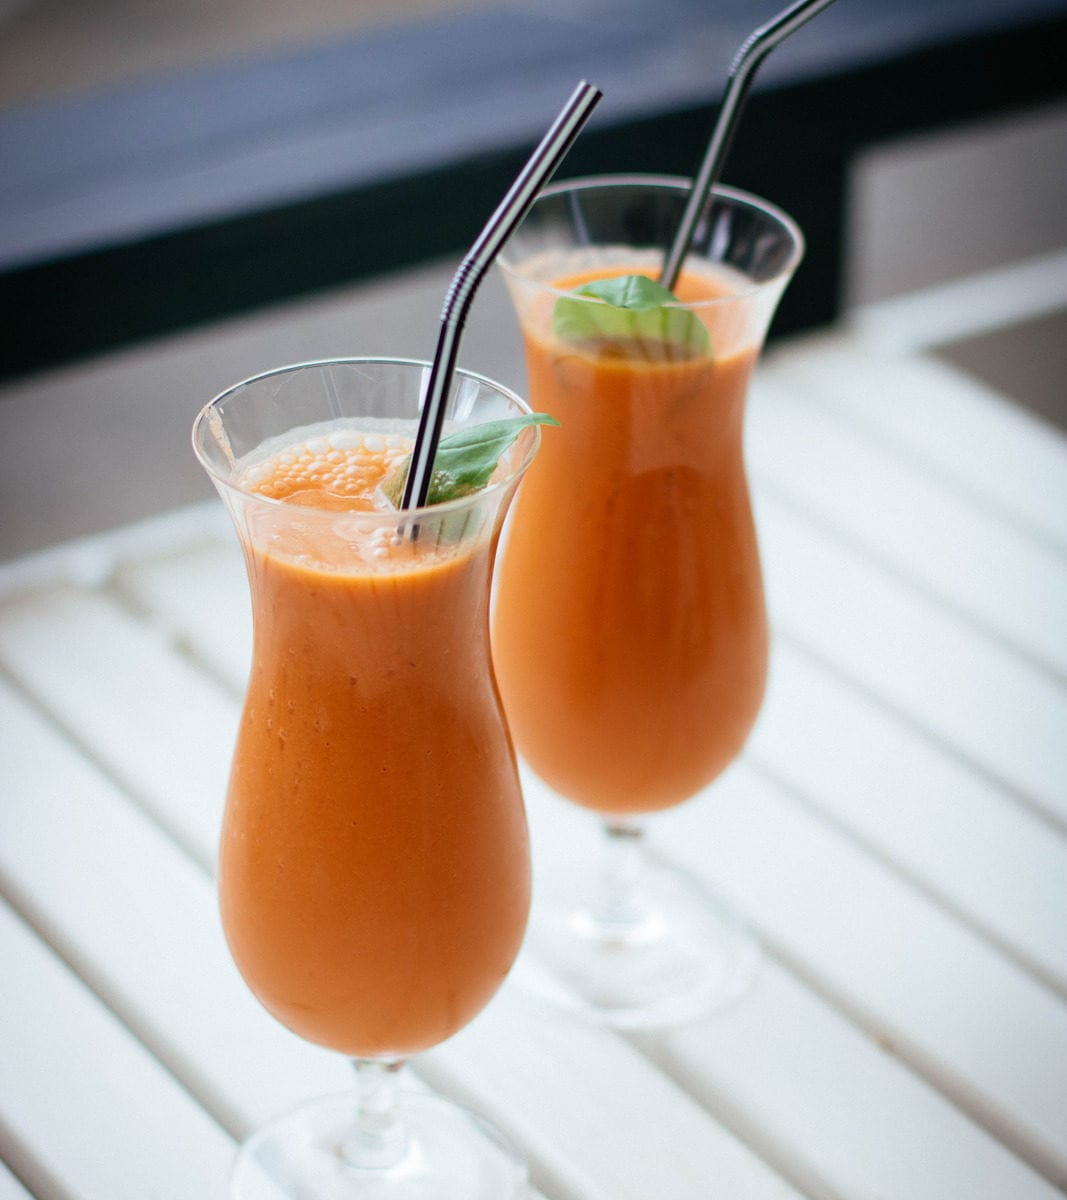 Canva - Selective Focus Photography of Two Orange Drinks